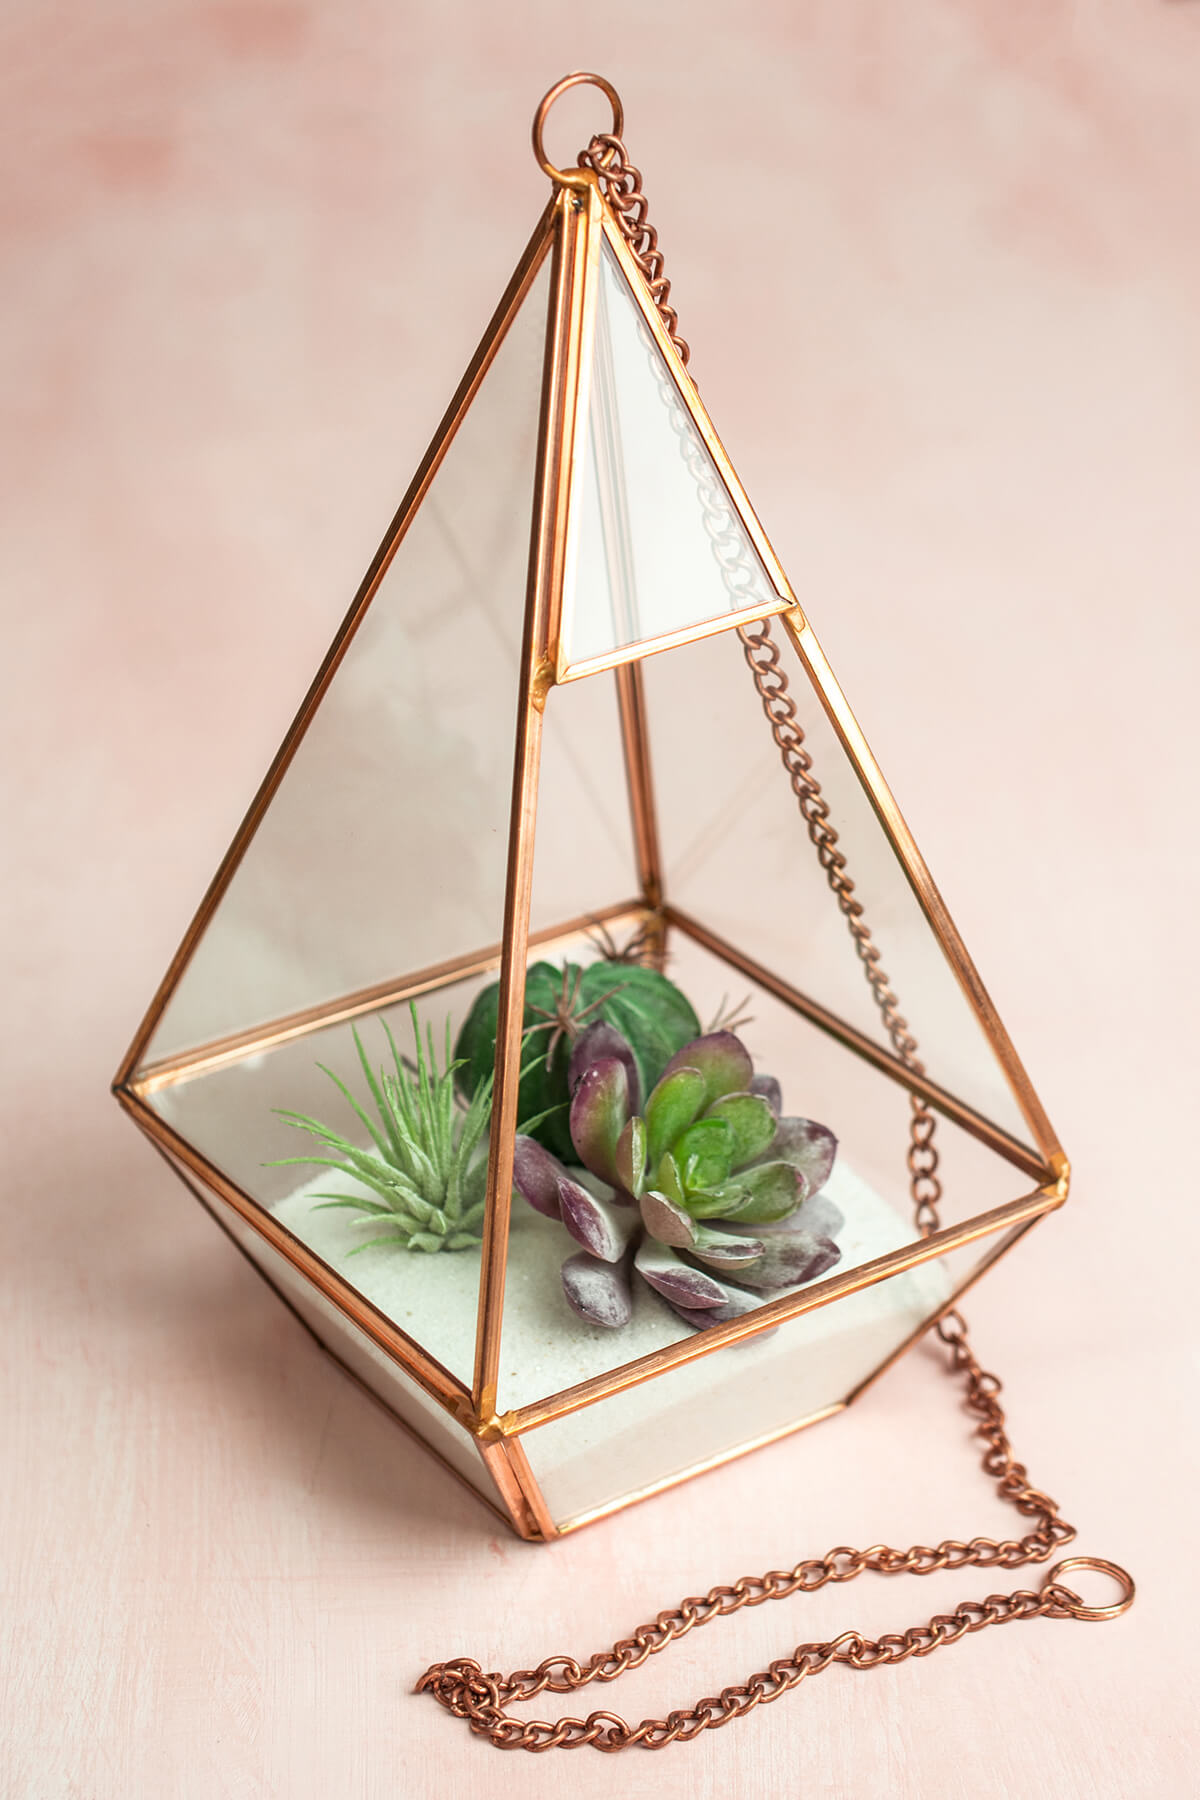 Copper Hanging 9 Quot Hexagonal Based Glass Amp Metal Terrarium